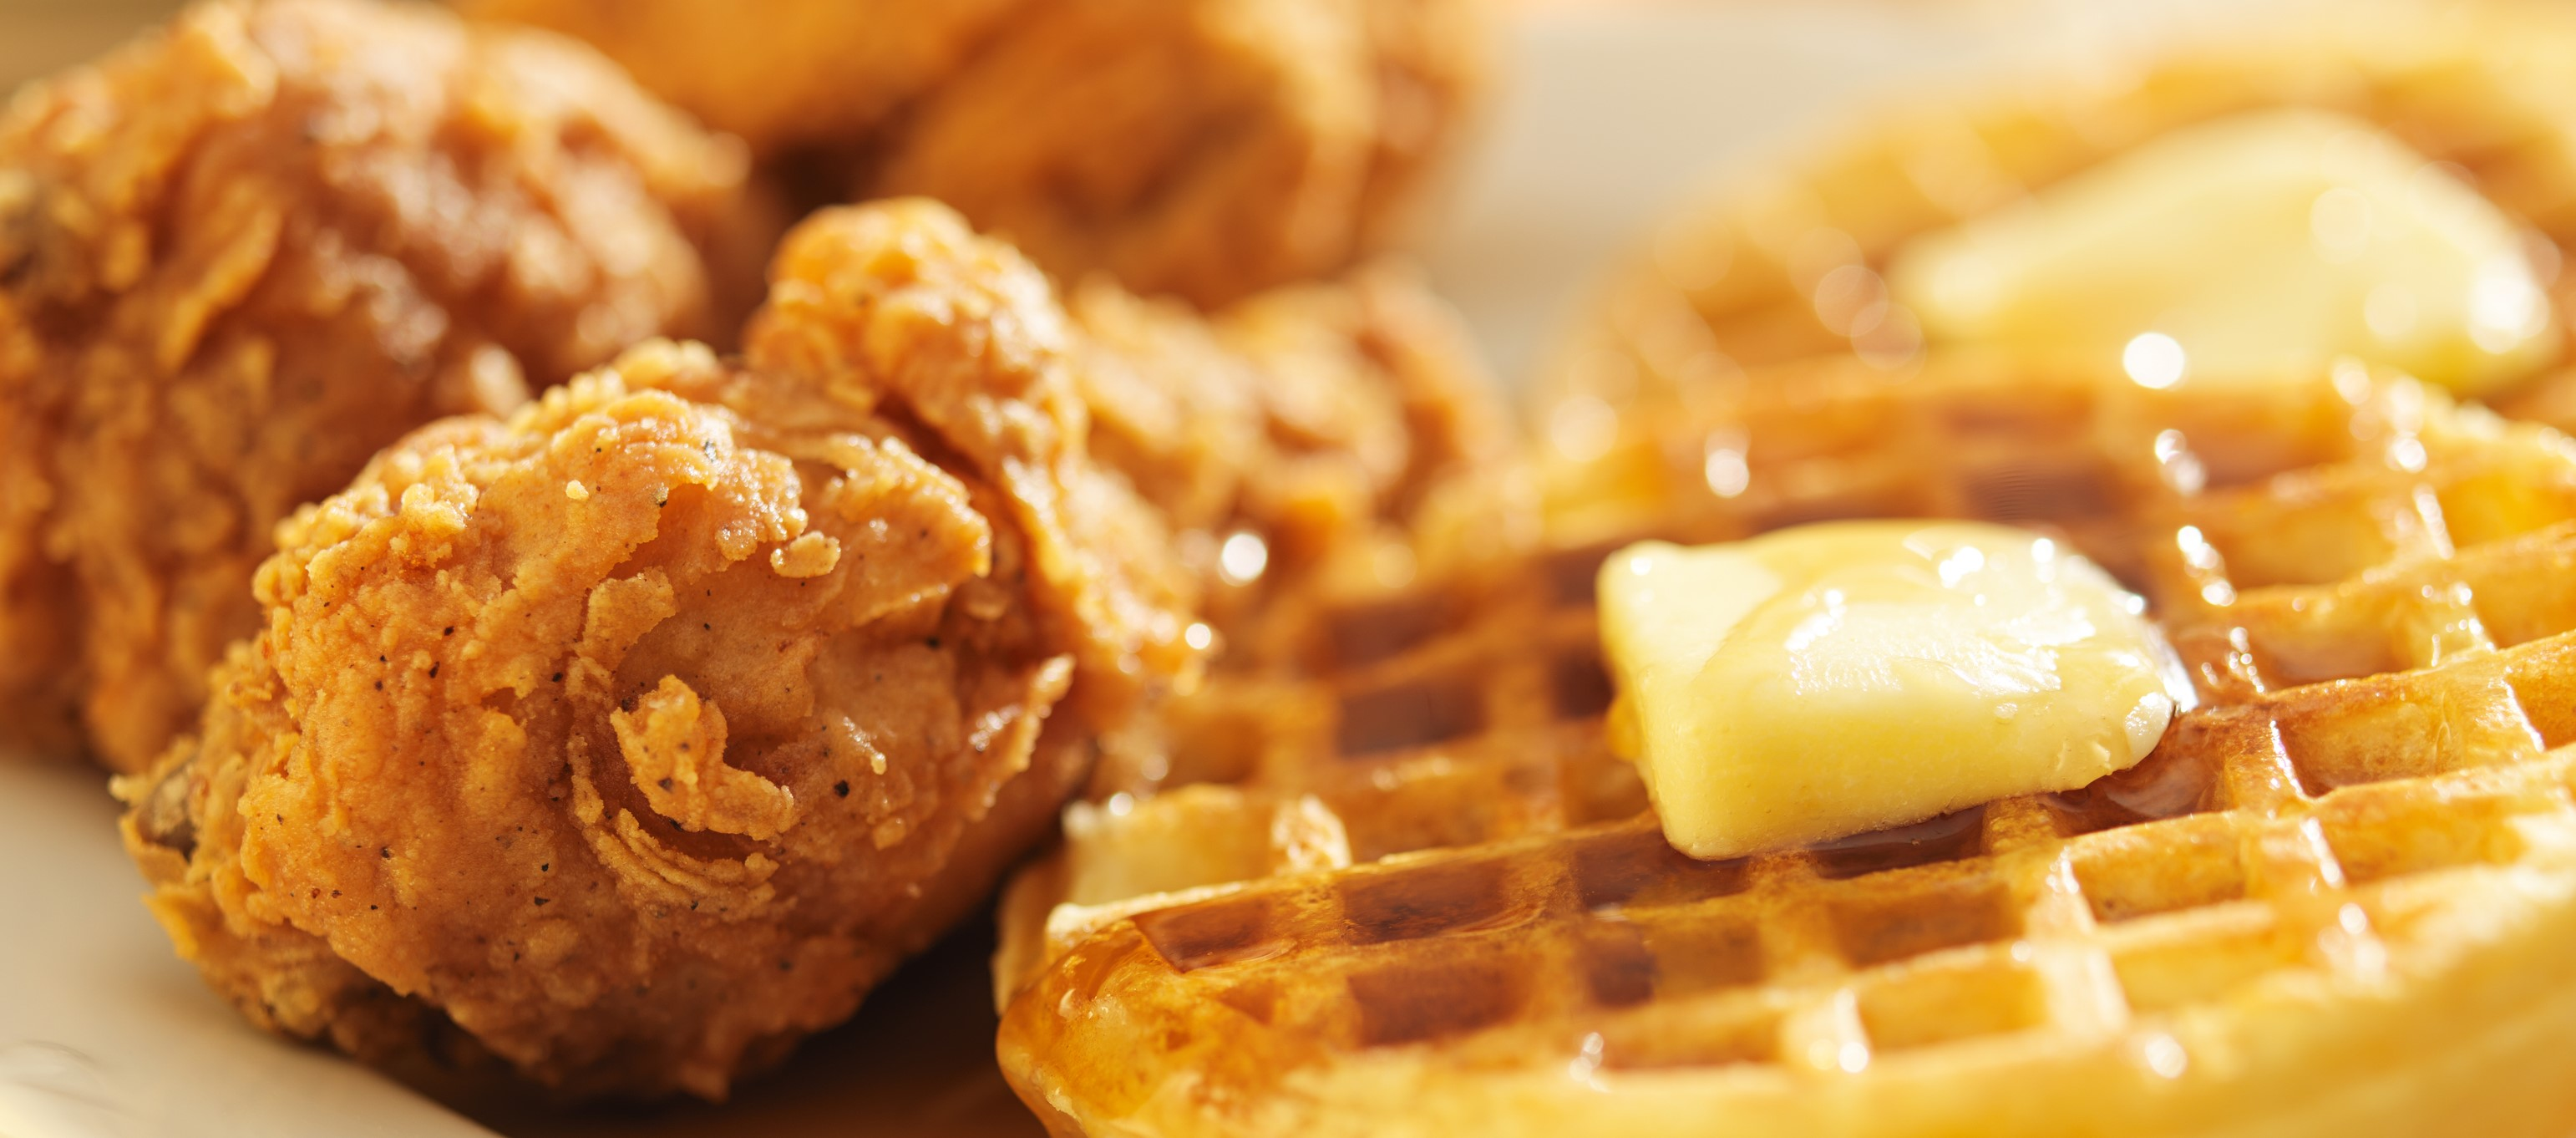 Detroit Aretha Franklin Motown Chicken & Waffles served tender crispy topped with Organic, 100% real pure Maple Syrup and Vegan Earth Balance margarine